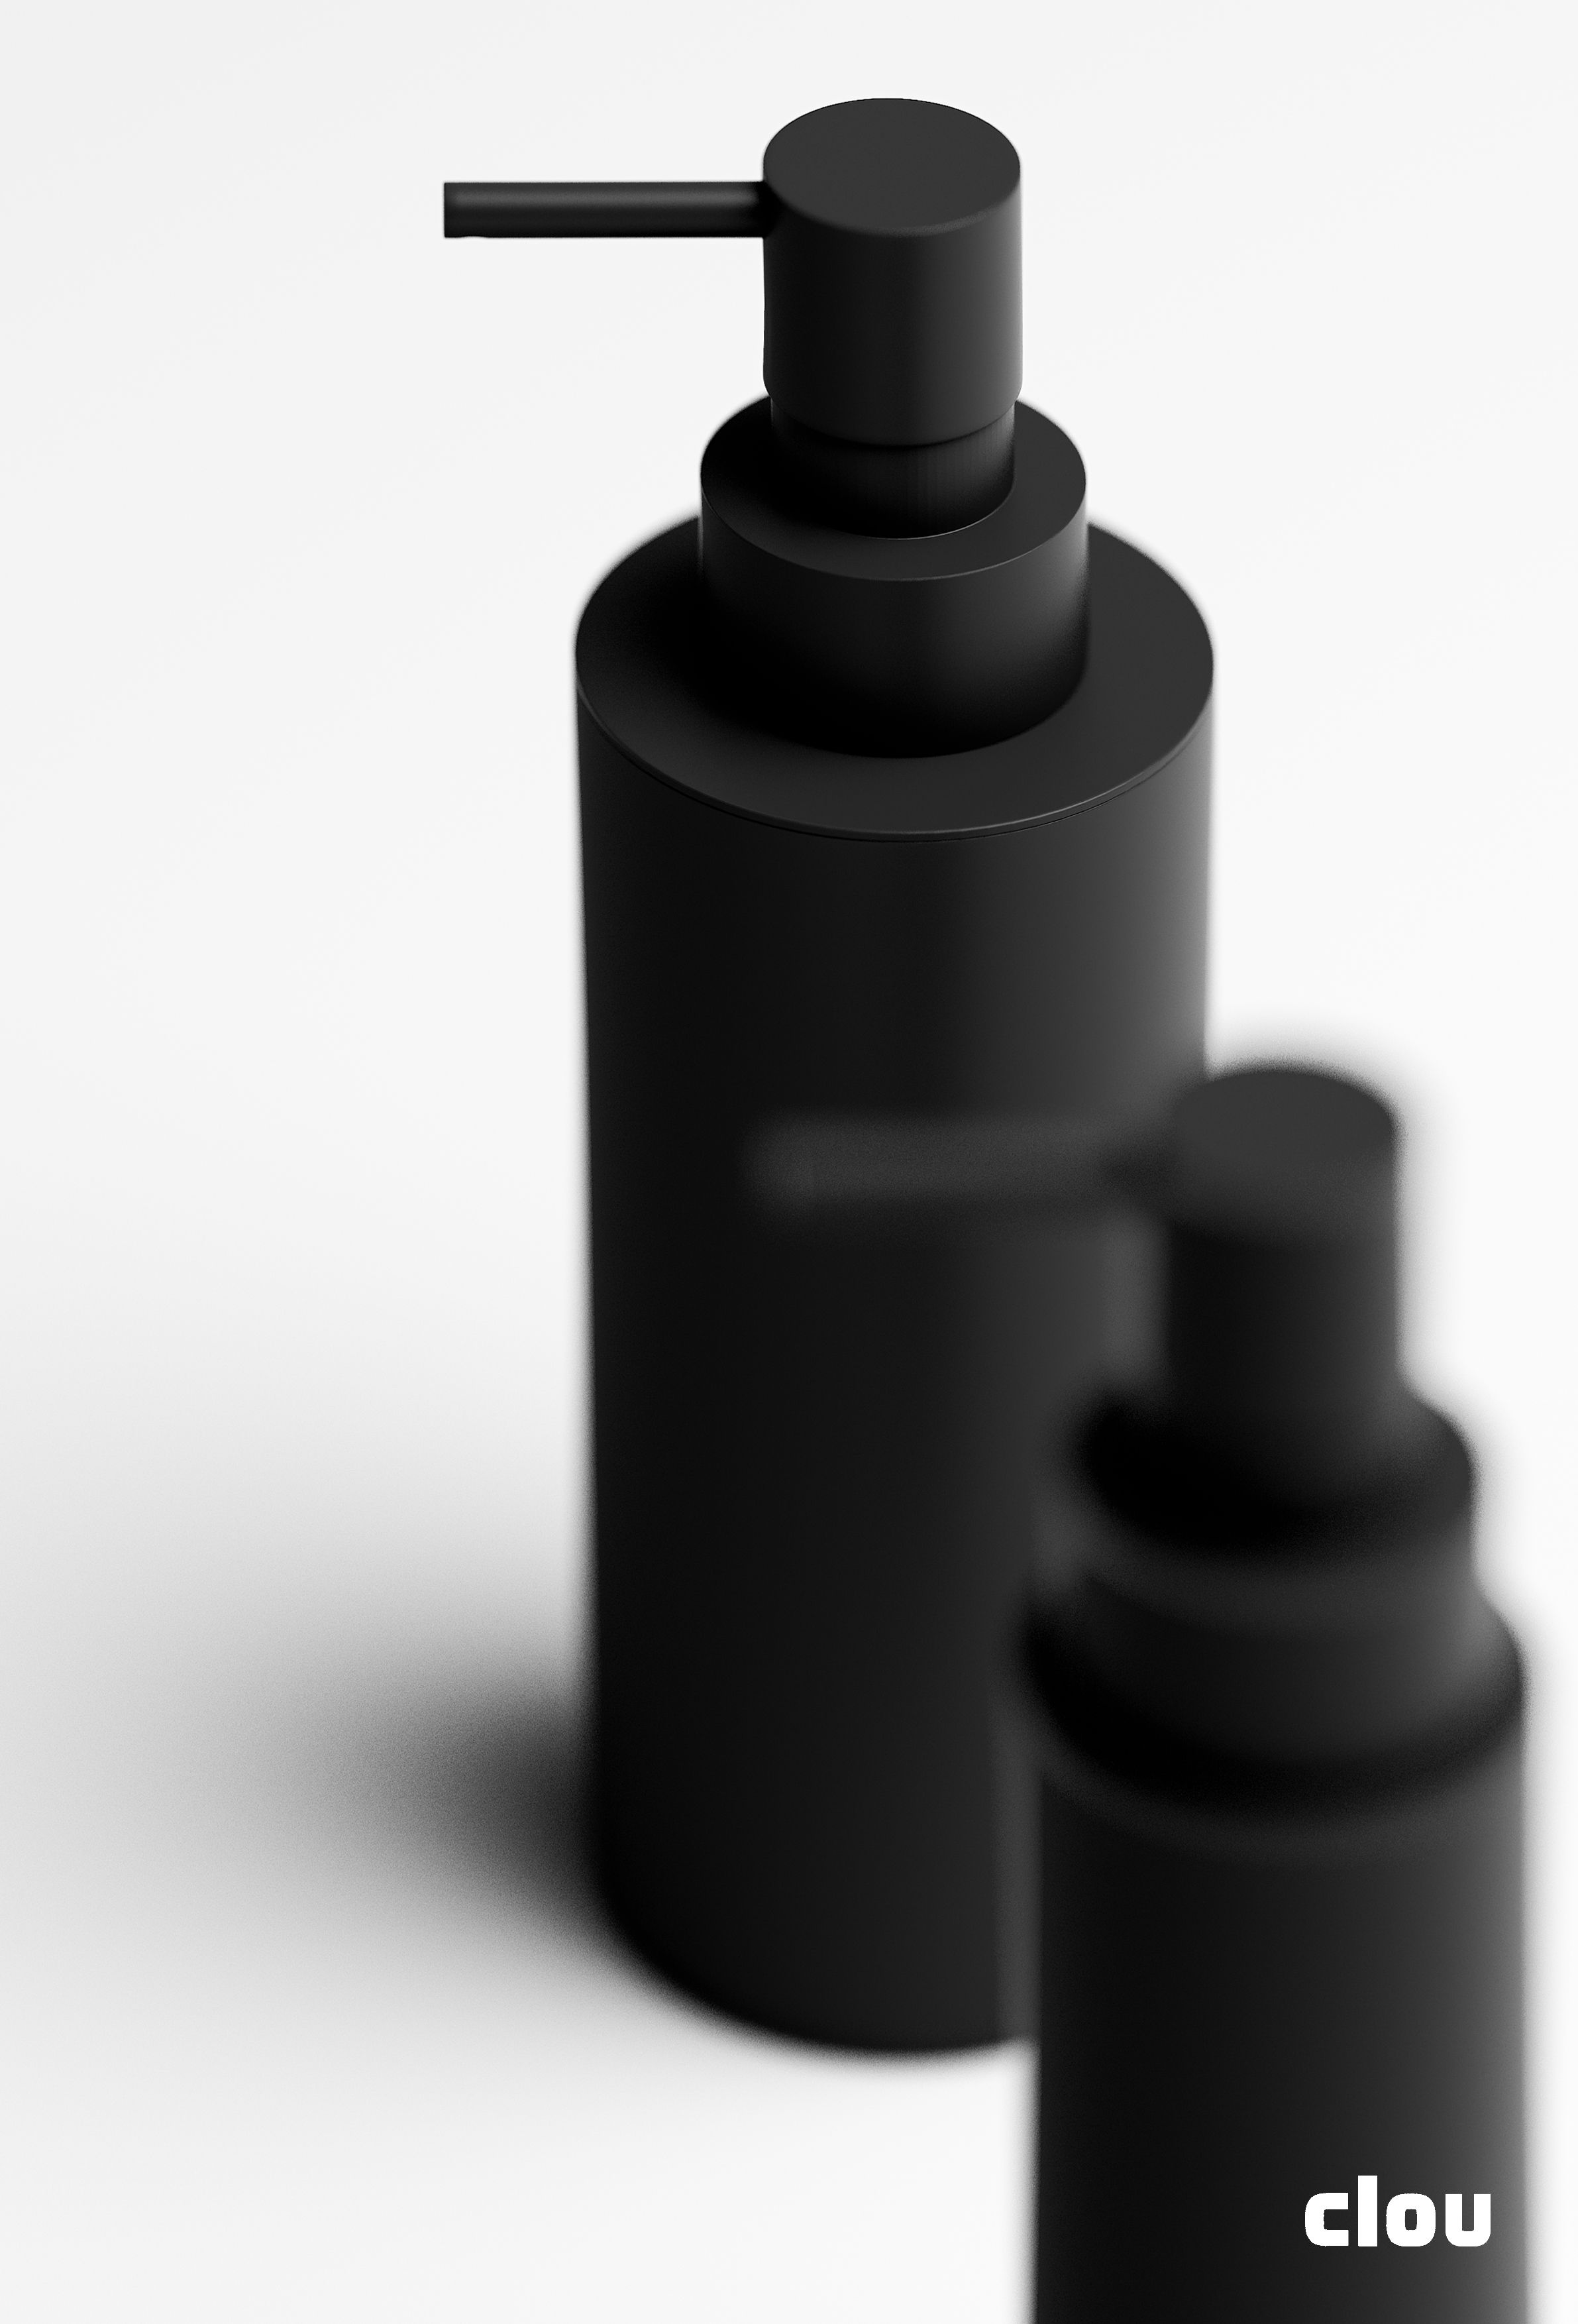 Matte Black Soap Dispenser By Clou Design Badkamer Badkamer